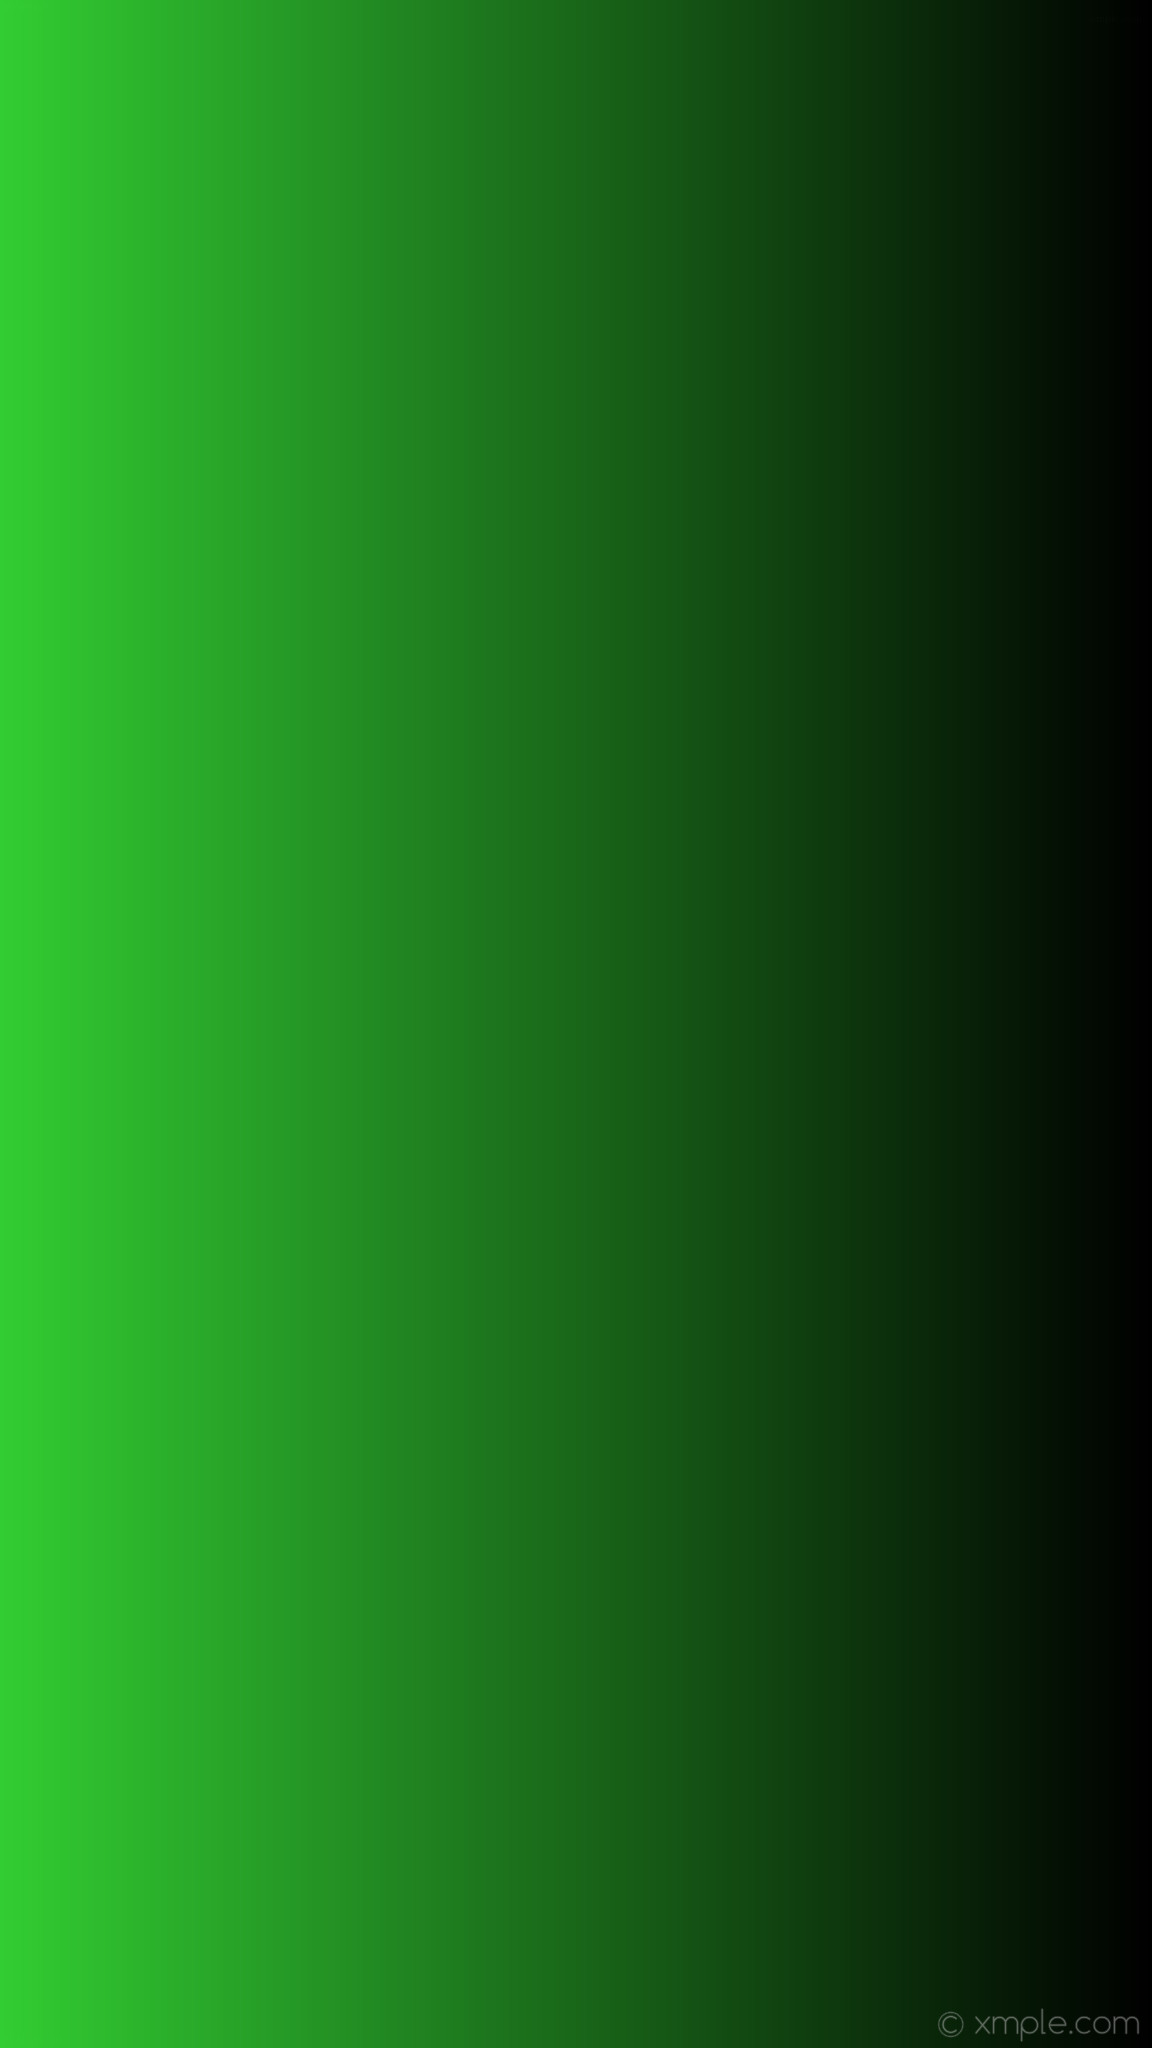 1152x2048 wallpaper gradient green black linear lime green #000000 #32cd32 0°